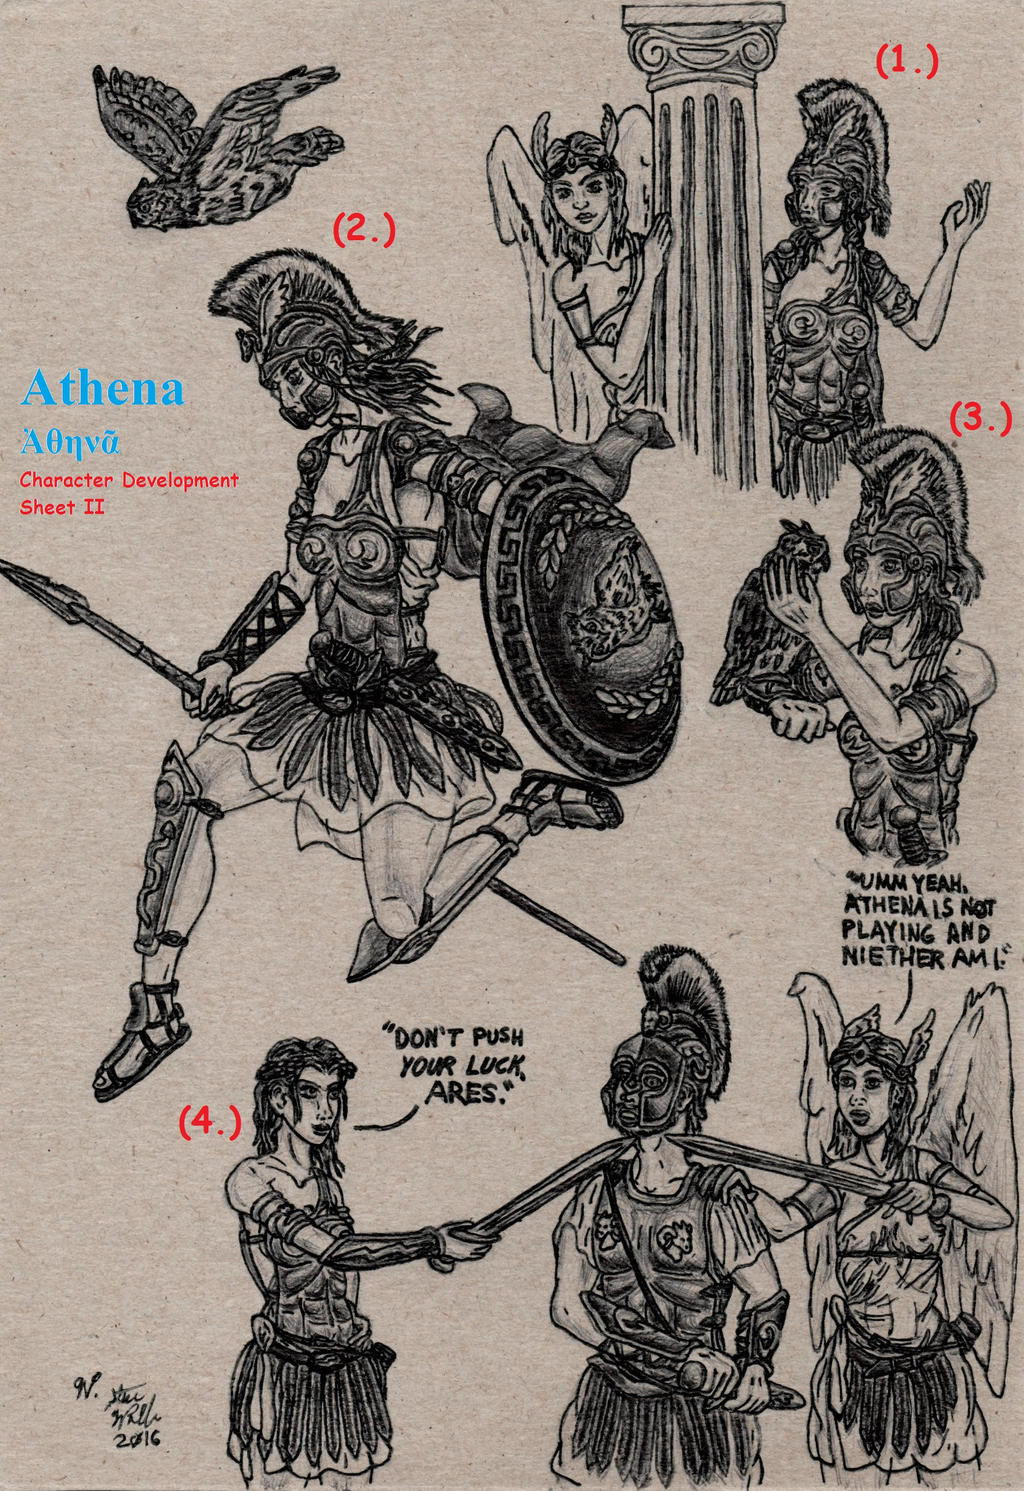 Athena Character Developement Sheet II by Deorse